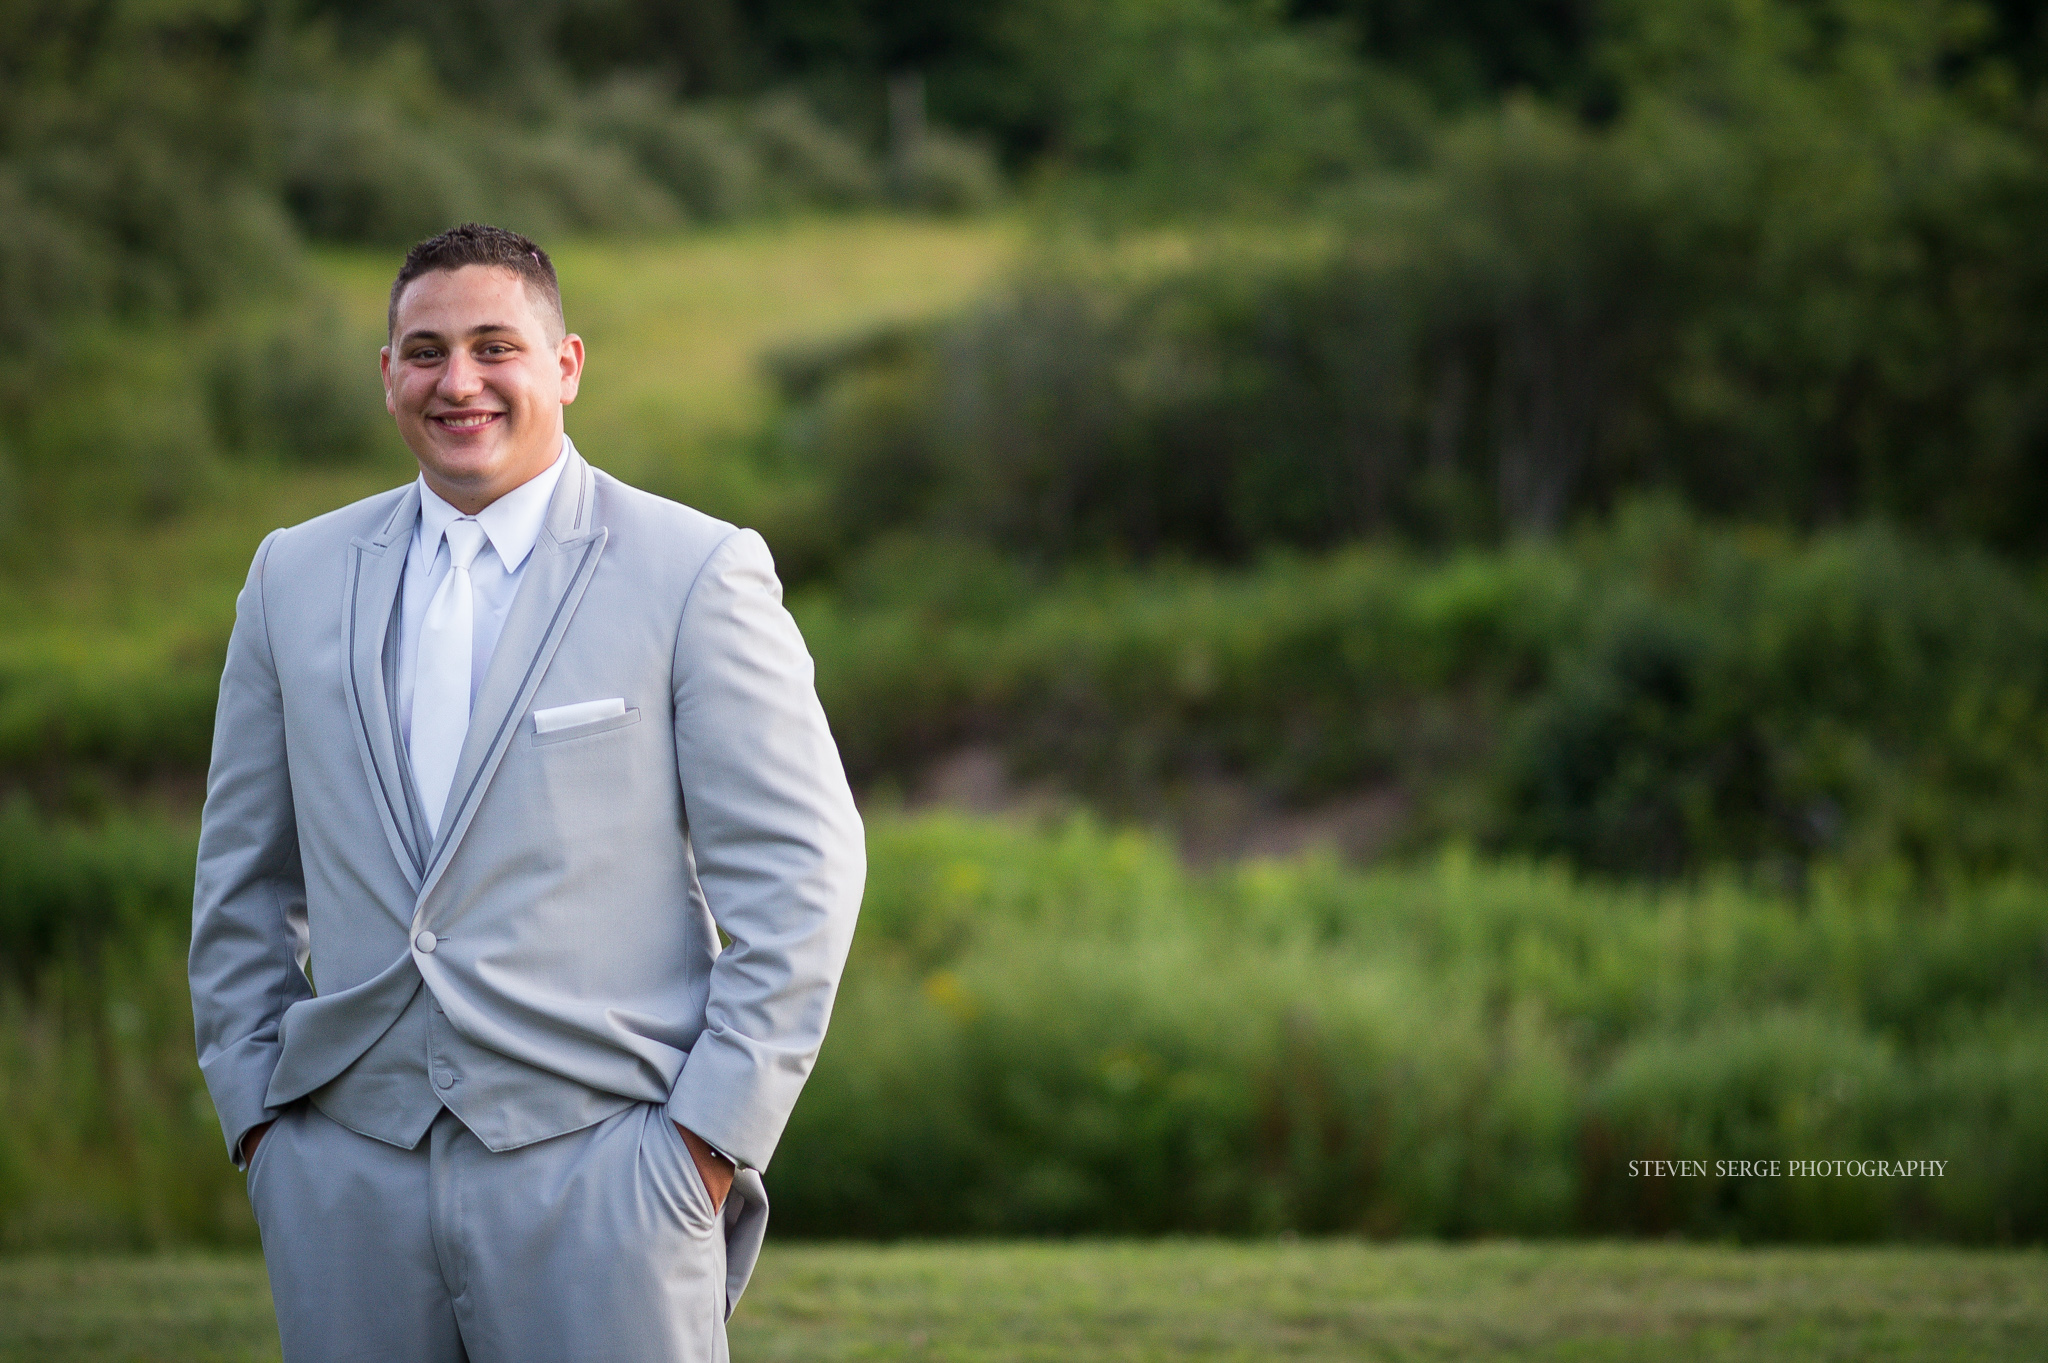 Clarks-Summit-PA-NEPA-Wedding-Photographer-Inn-Abingtons-Party-photography-steven-serge-37.jpg